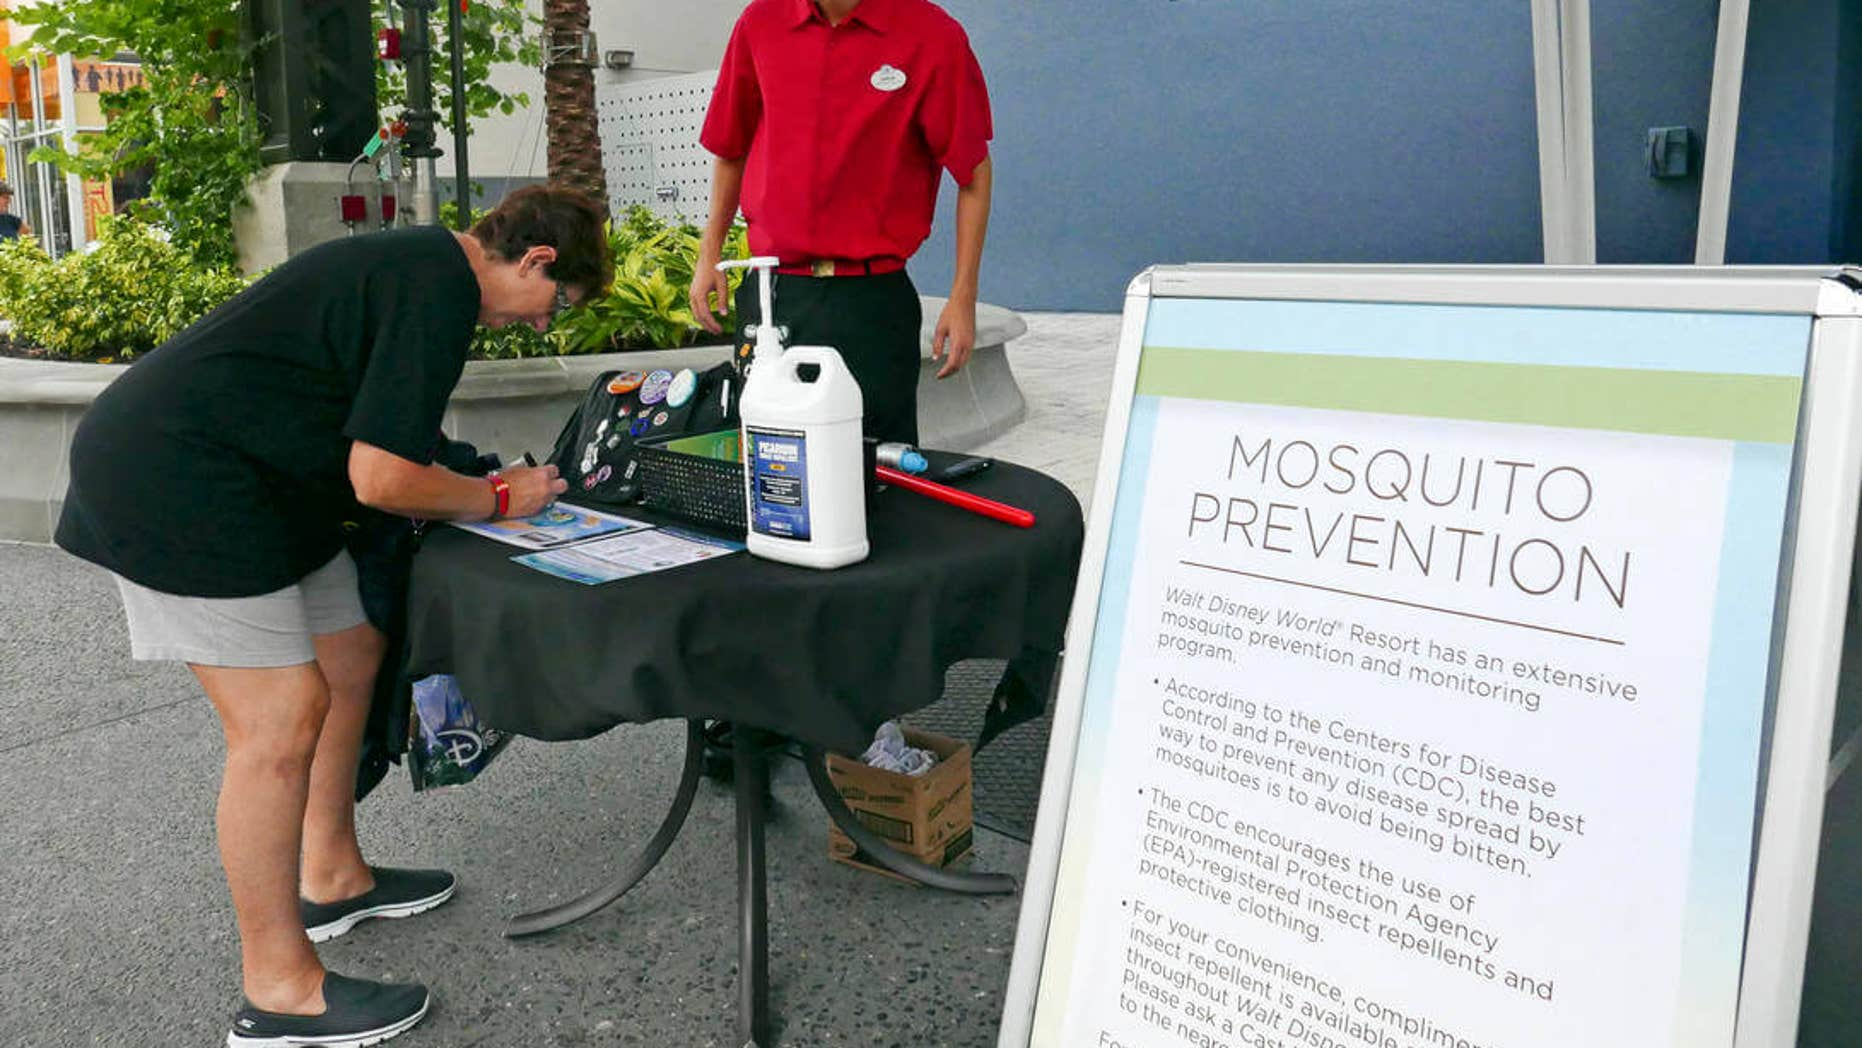 A tourist stops by a station giving out free mosquito repellant at Disney Springs in Lake Buena Vista, Fla. on Tuesday Sept. 13, 2016.